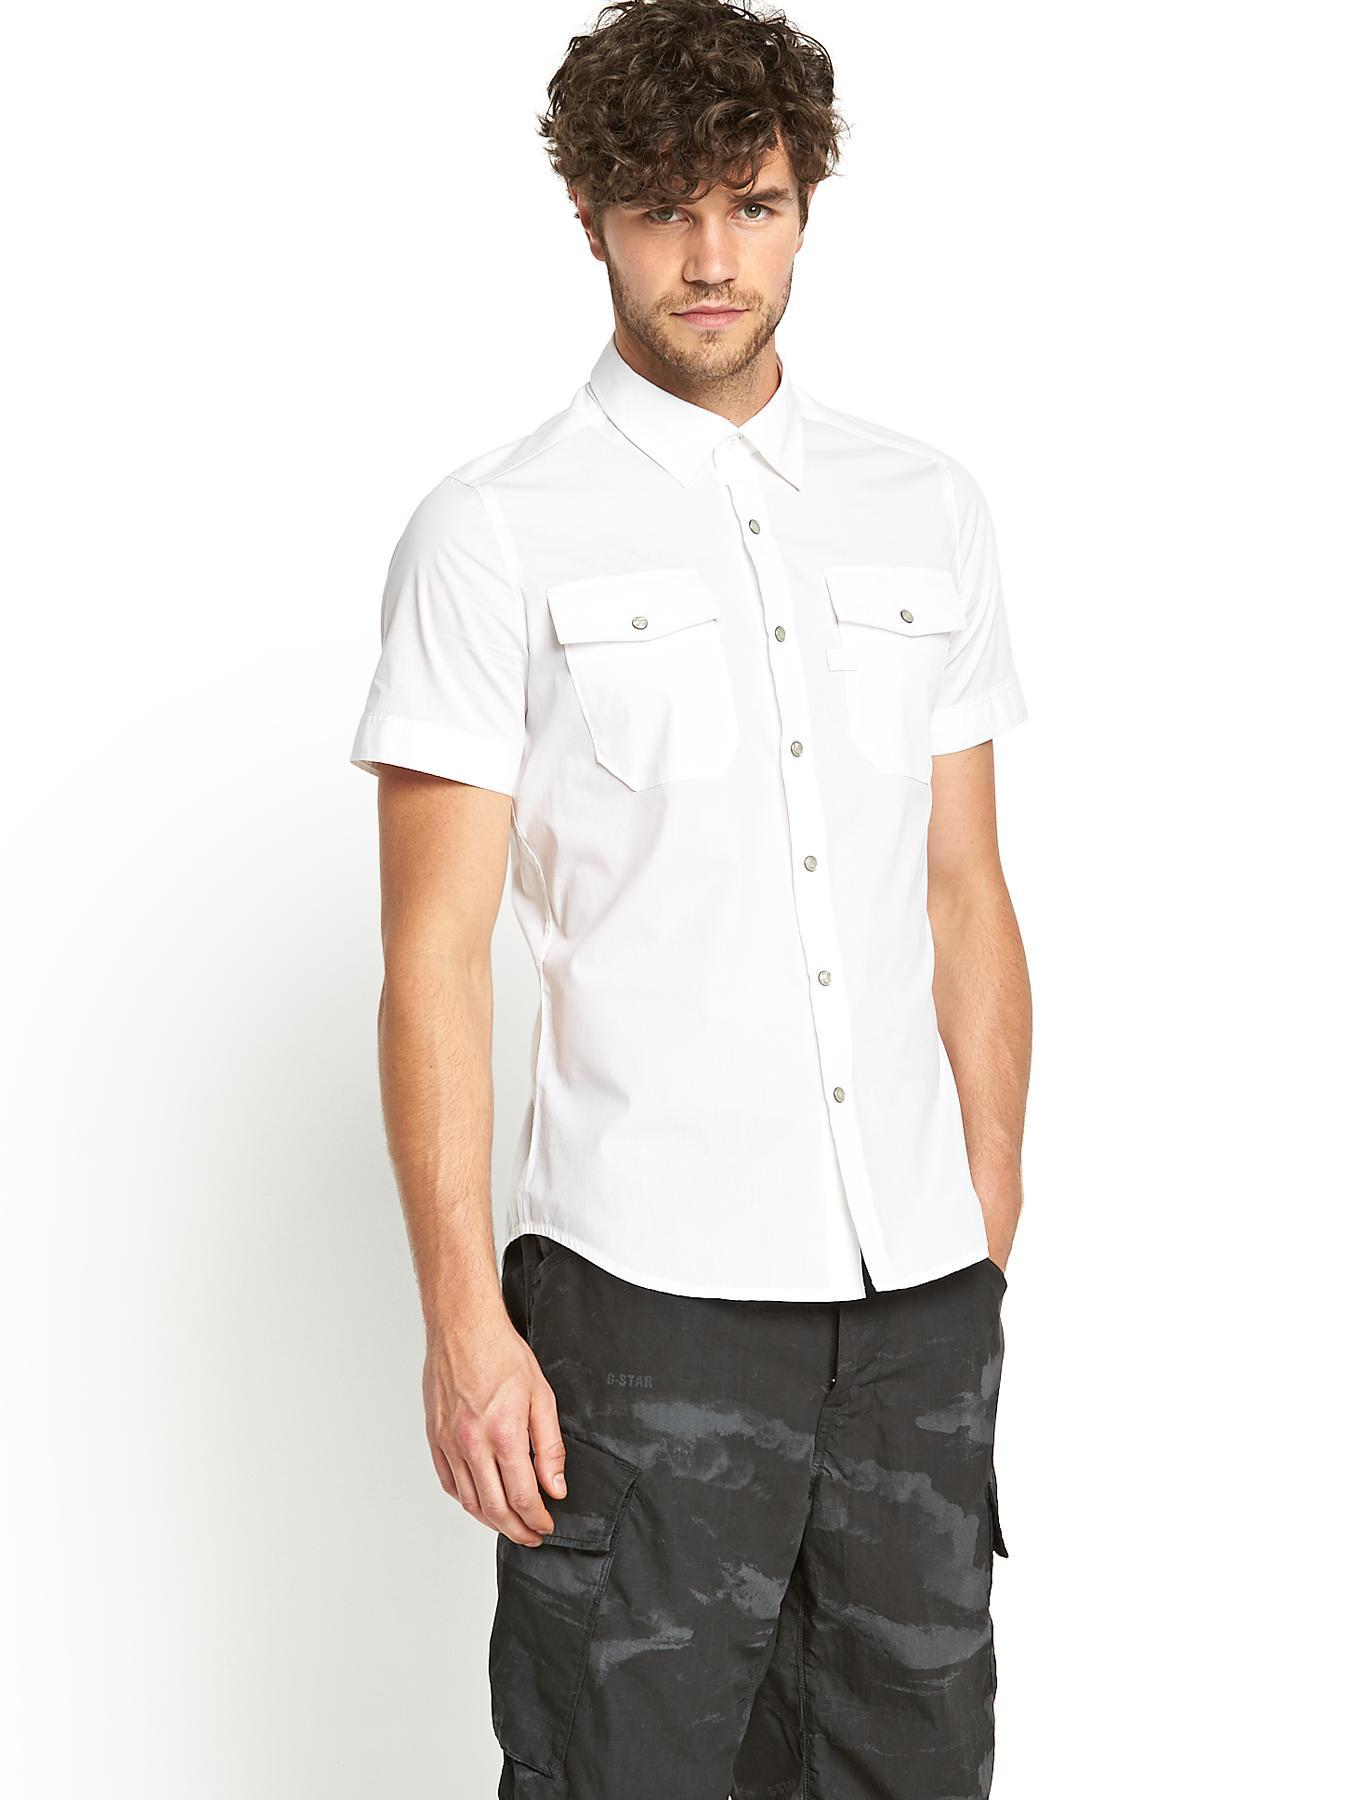 Landoh Mens Short Sleeve Shirt - White, White